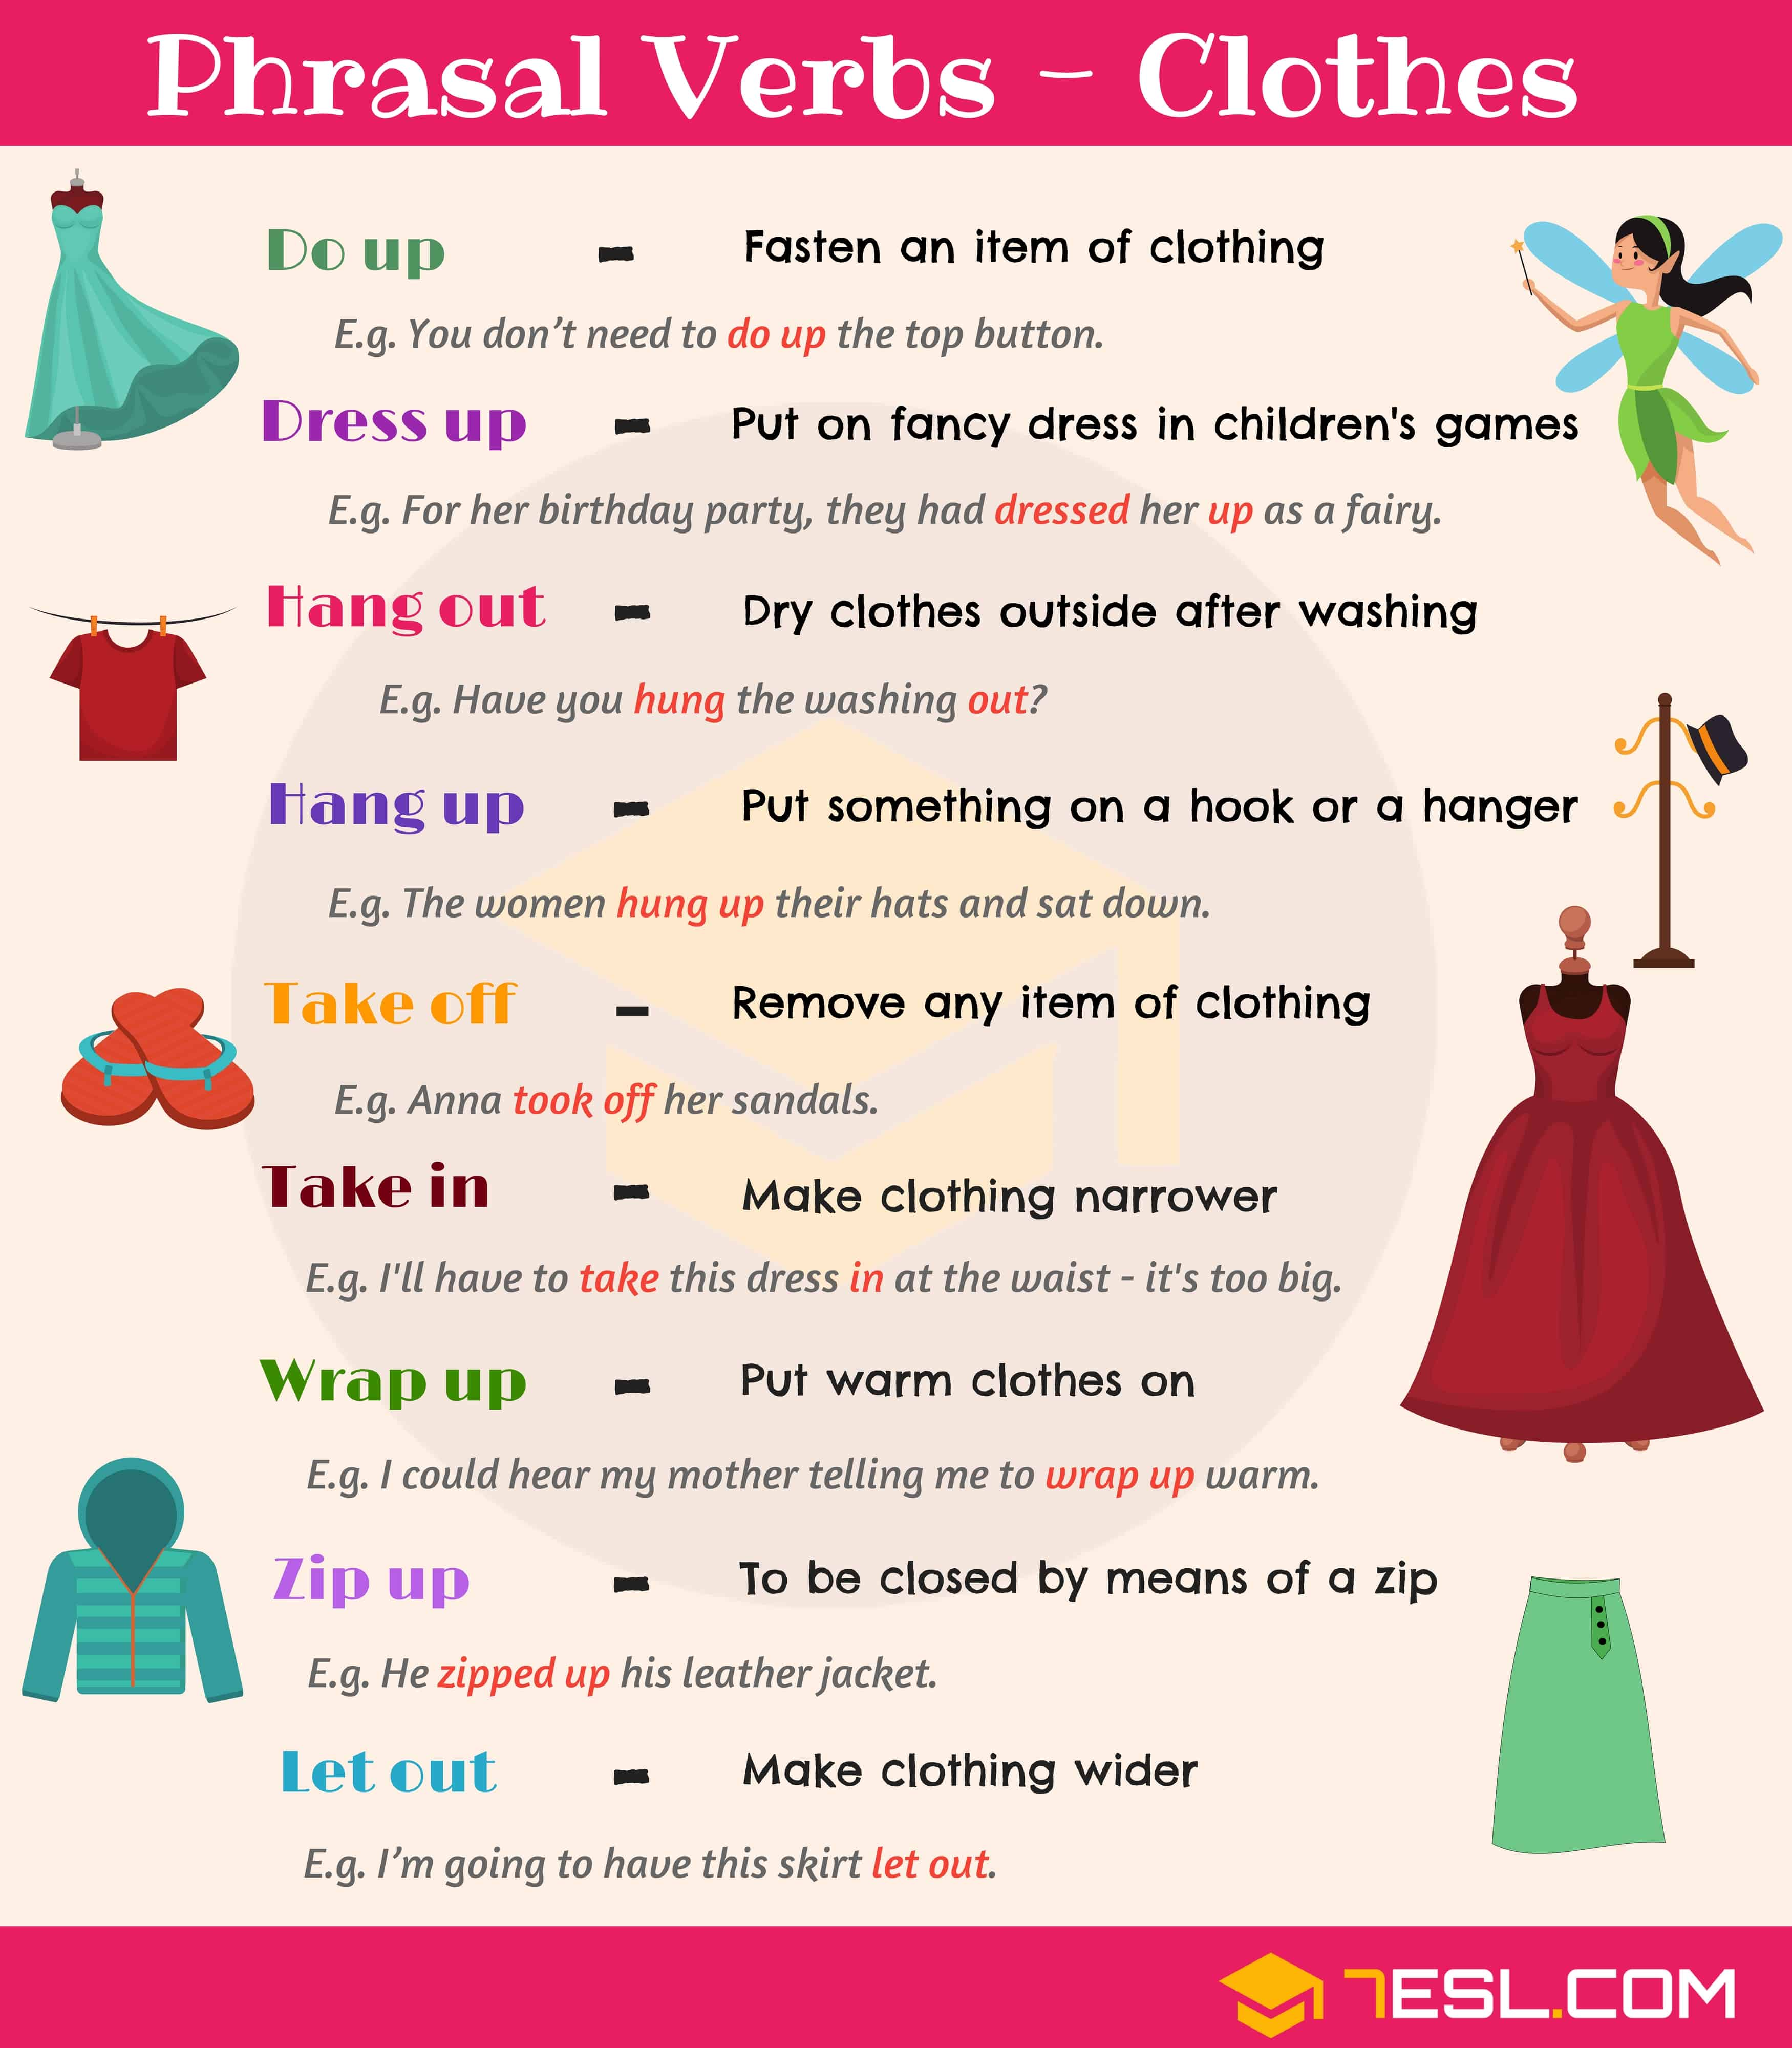 20 Useful Clothing Phrasal Verbs In English